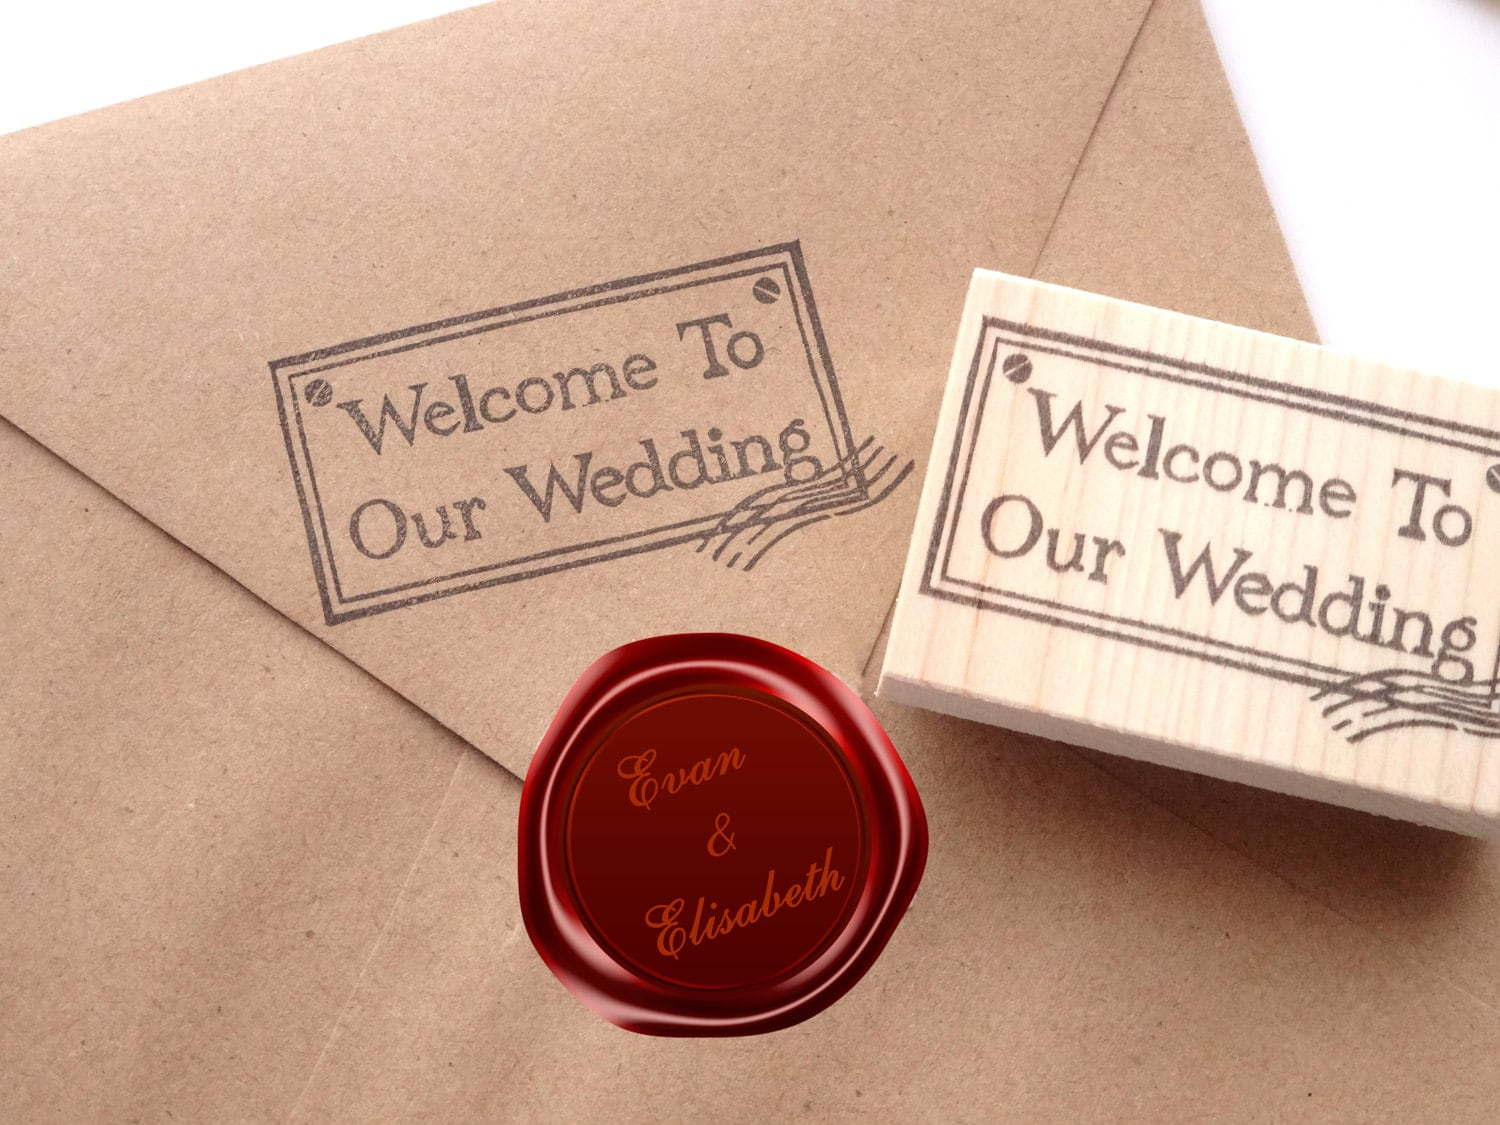 Welcome to our wedding stamp, Invitation decor, DIY wedding, Rubber ...